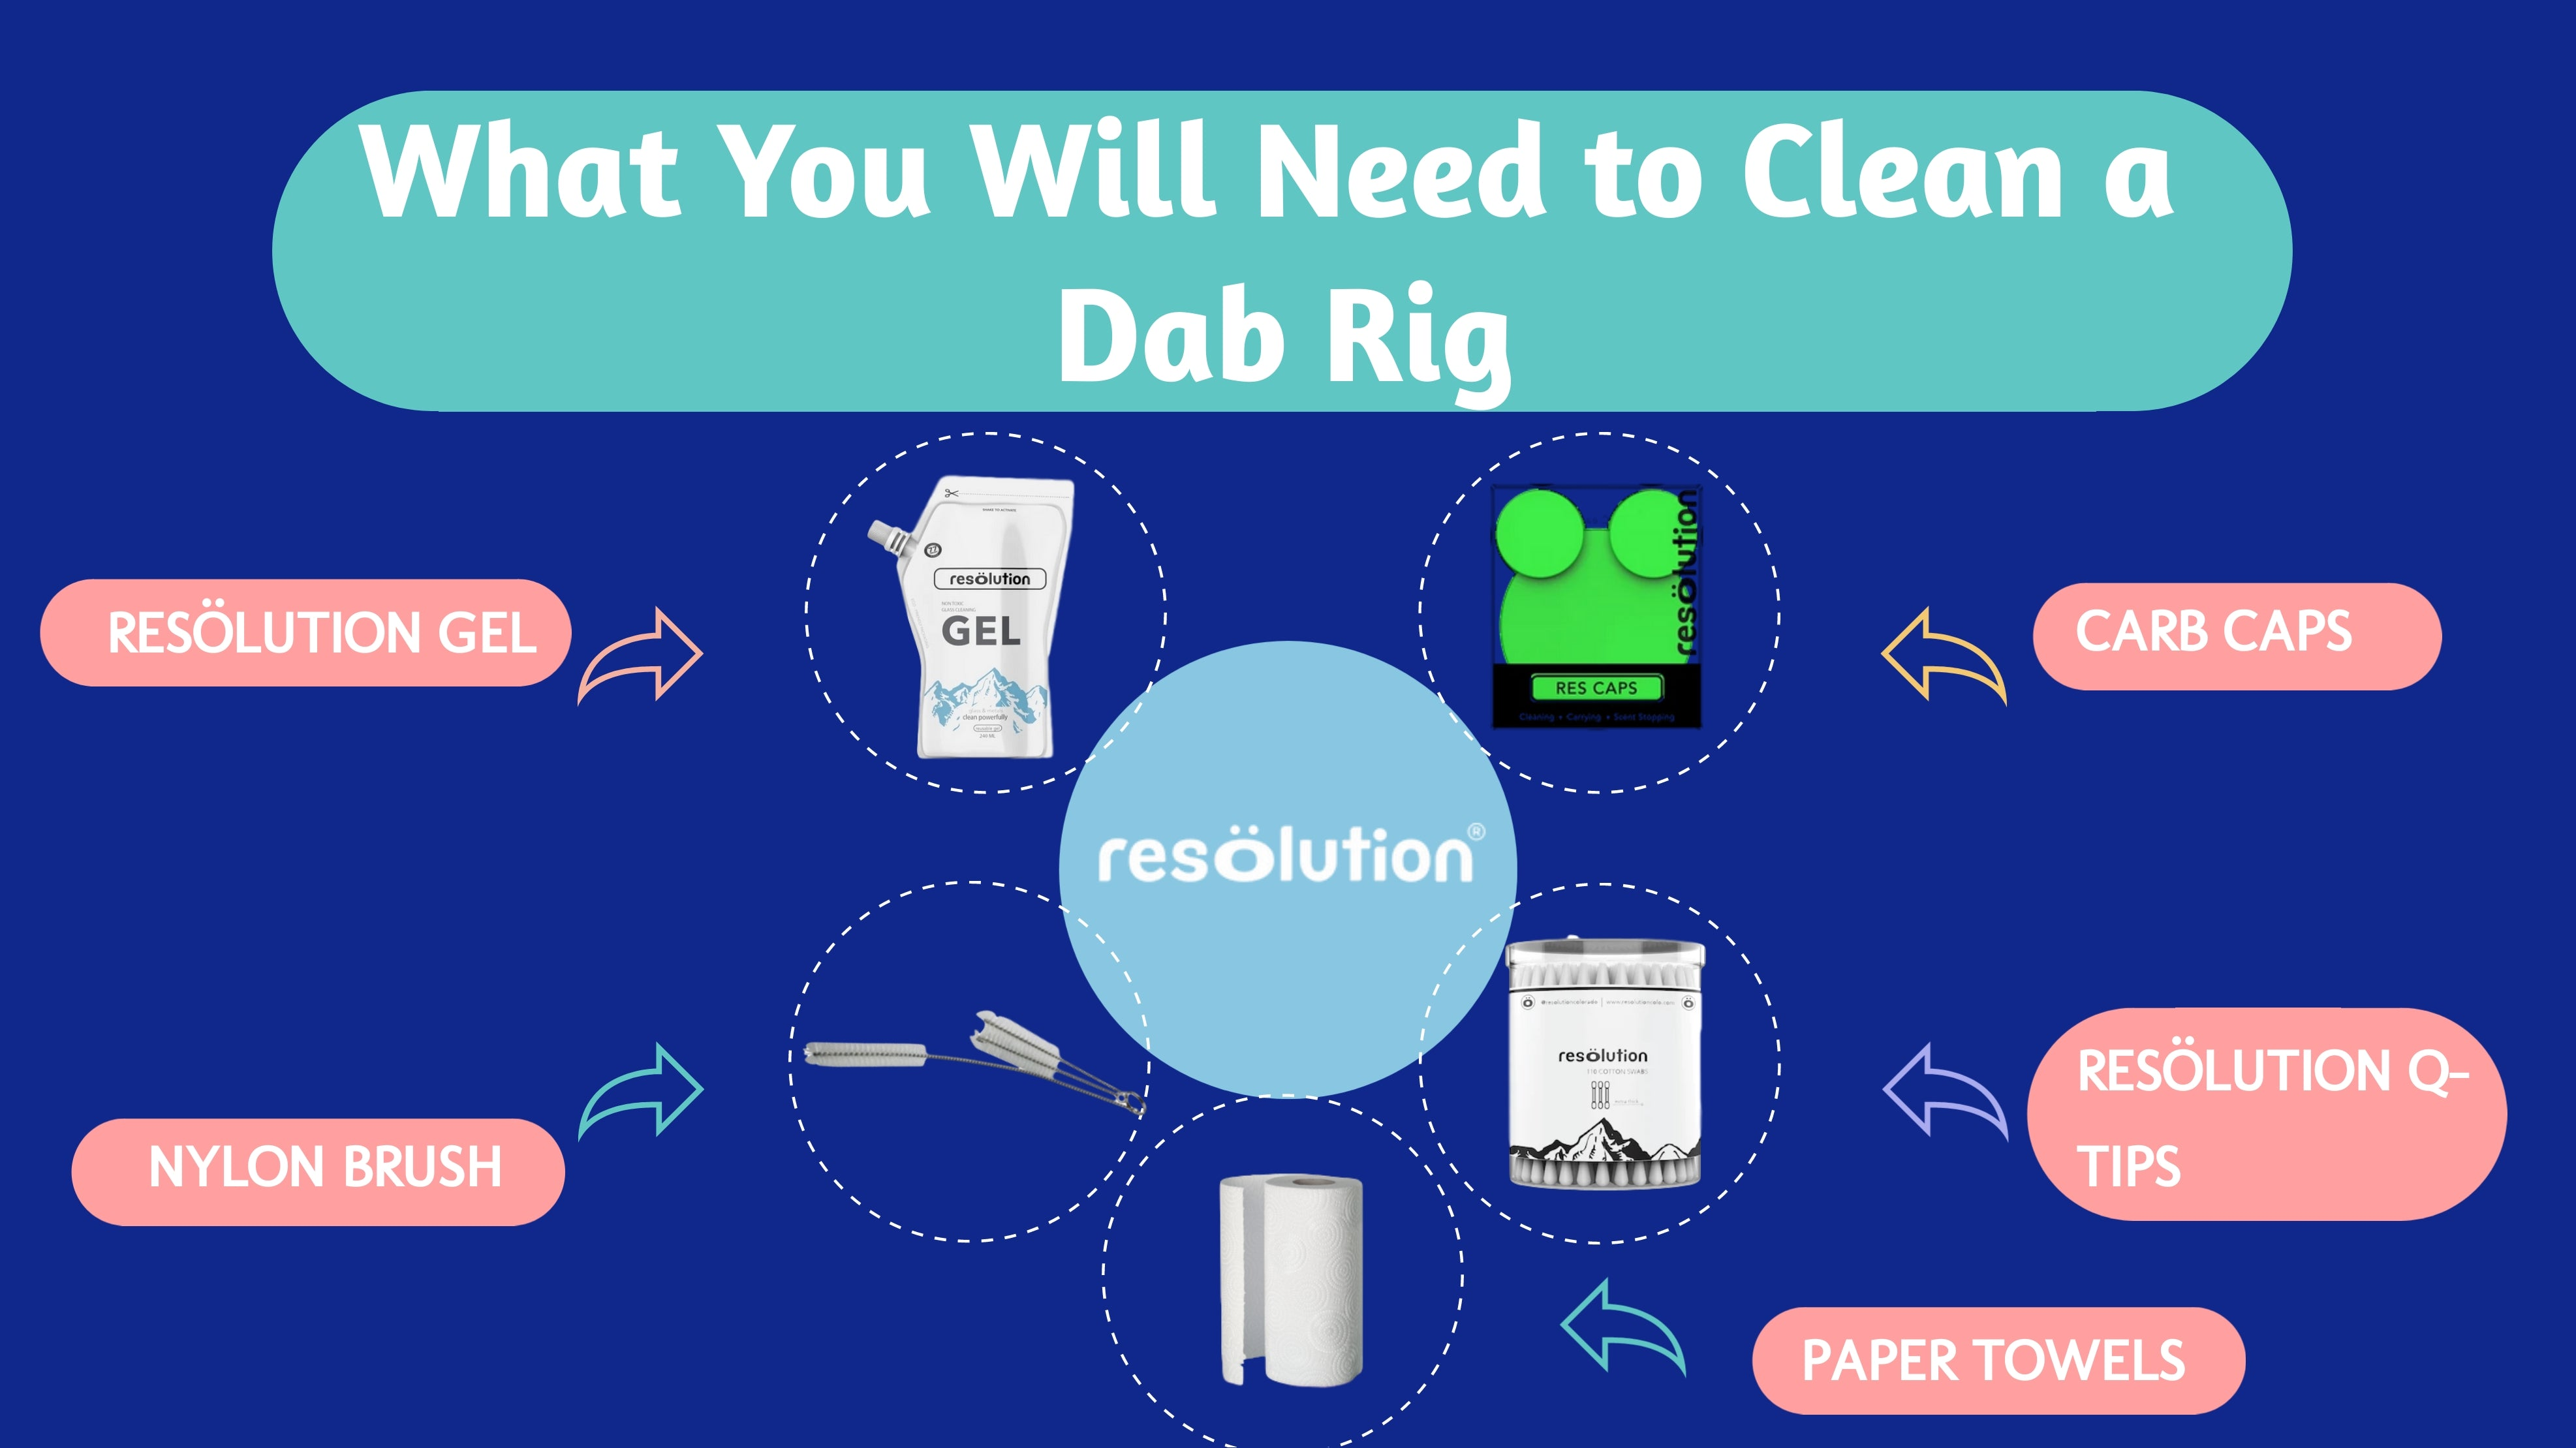 what you will need to clean a dab rig